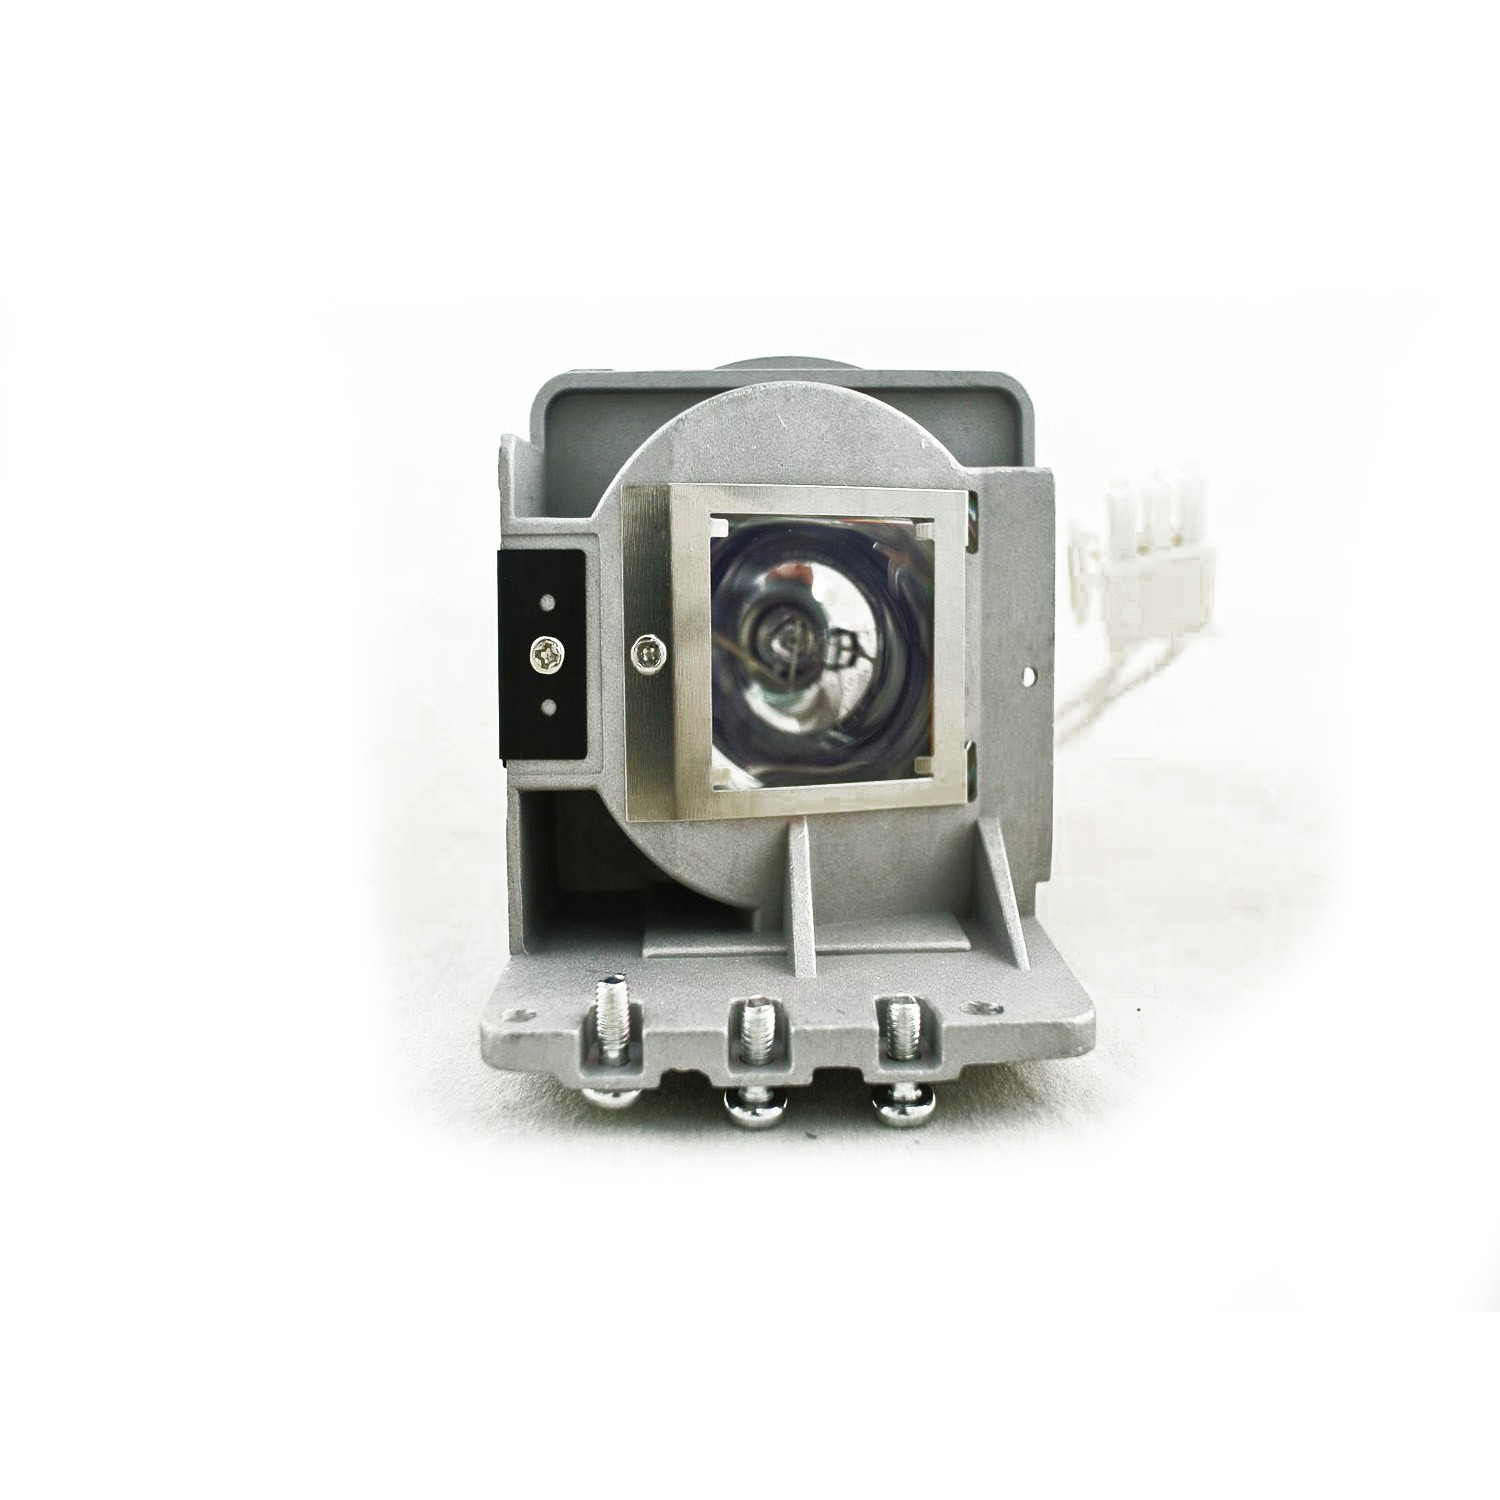 V7 SP-LAMP-087-V7-1E REPLACEMENT LAMP FOR INFOCUS SP-LAMP-087